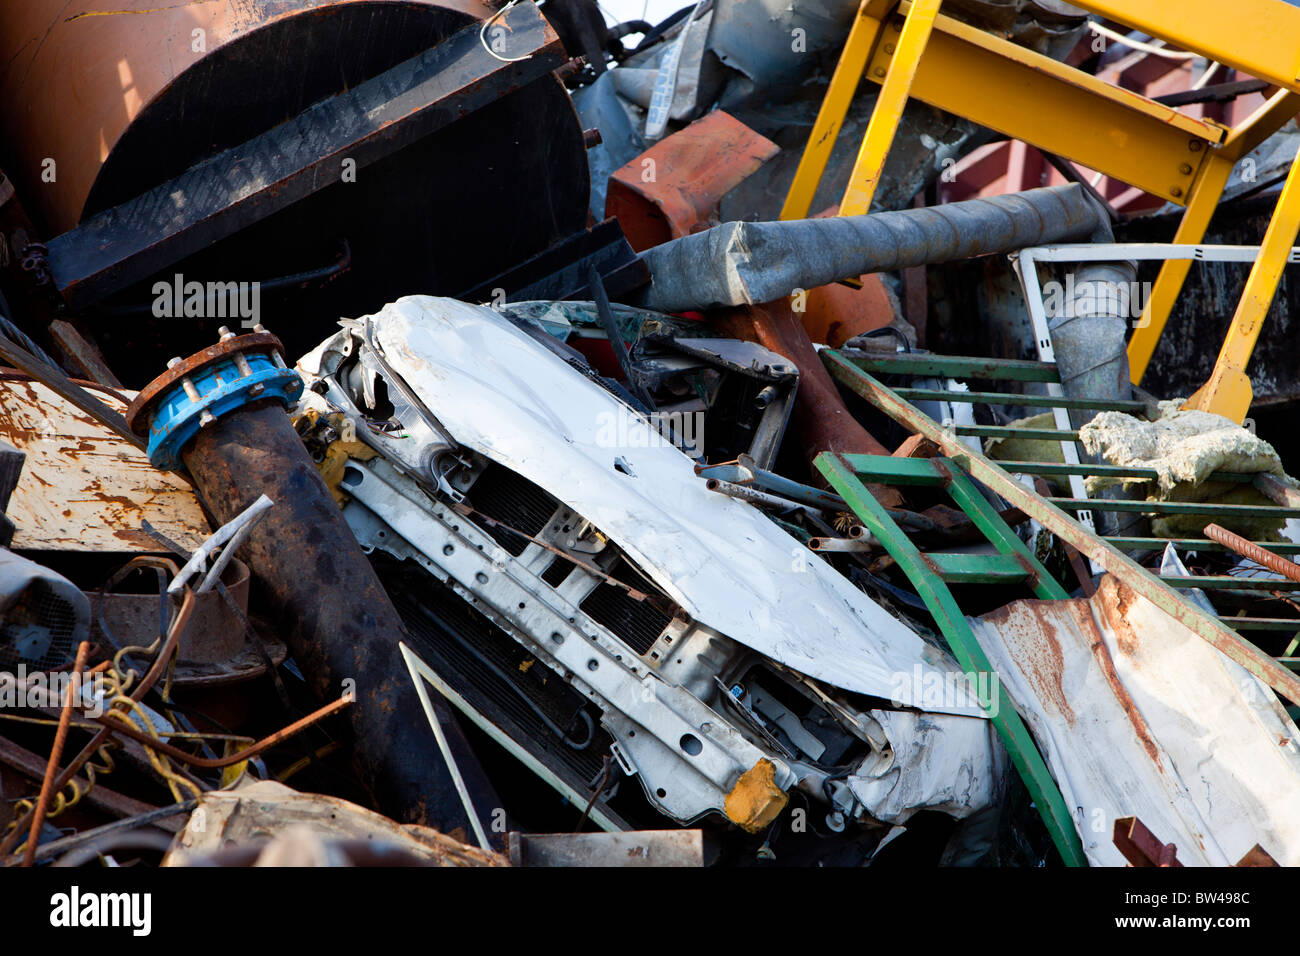 Pile of metal waiting for recycling Stock Photo